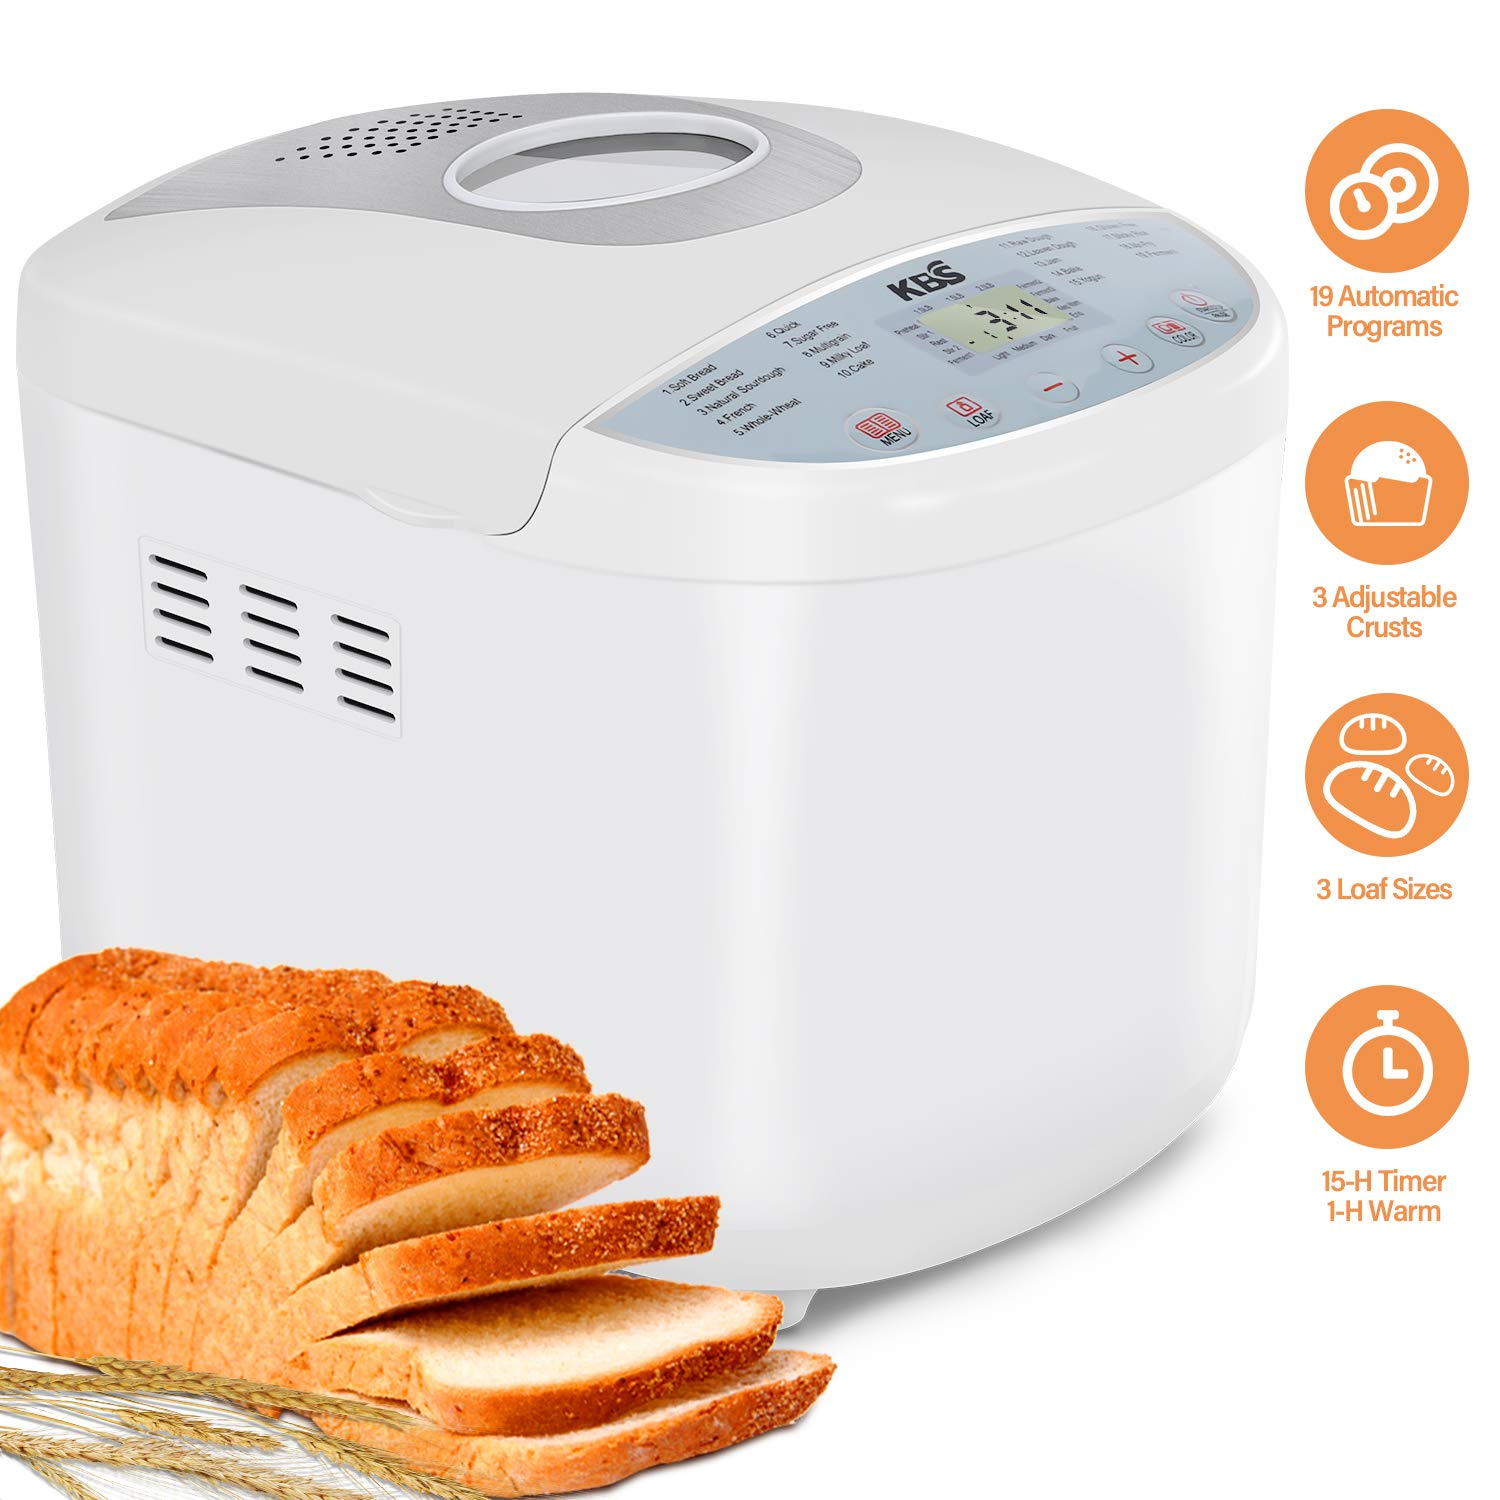 KBS Full Automatic Bread Maker 2LB, Multi-Use 19 Programs Bread Machine, 360° Double Tube Bake with Ceramic Pan, 3 Loaf Sizes 3 Crust Colors Digital Screen, 15hrs Delay Time 1h Keep Warm, ETL Approved by KBS